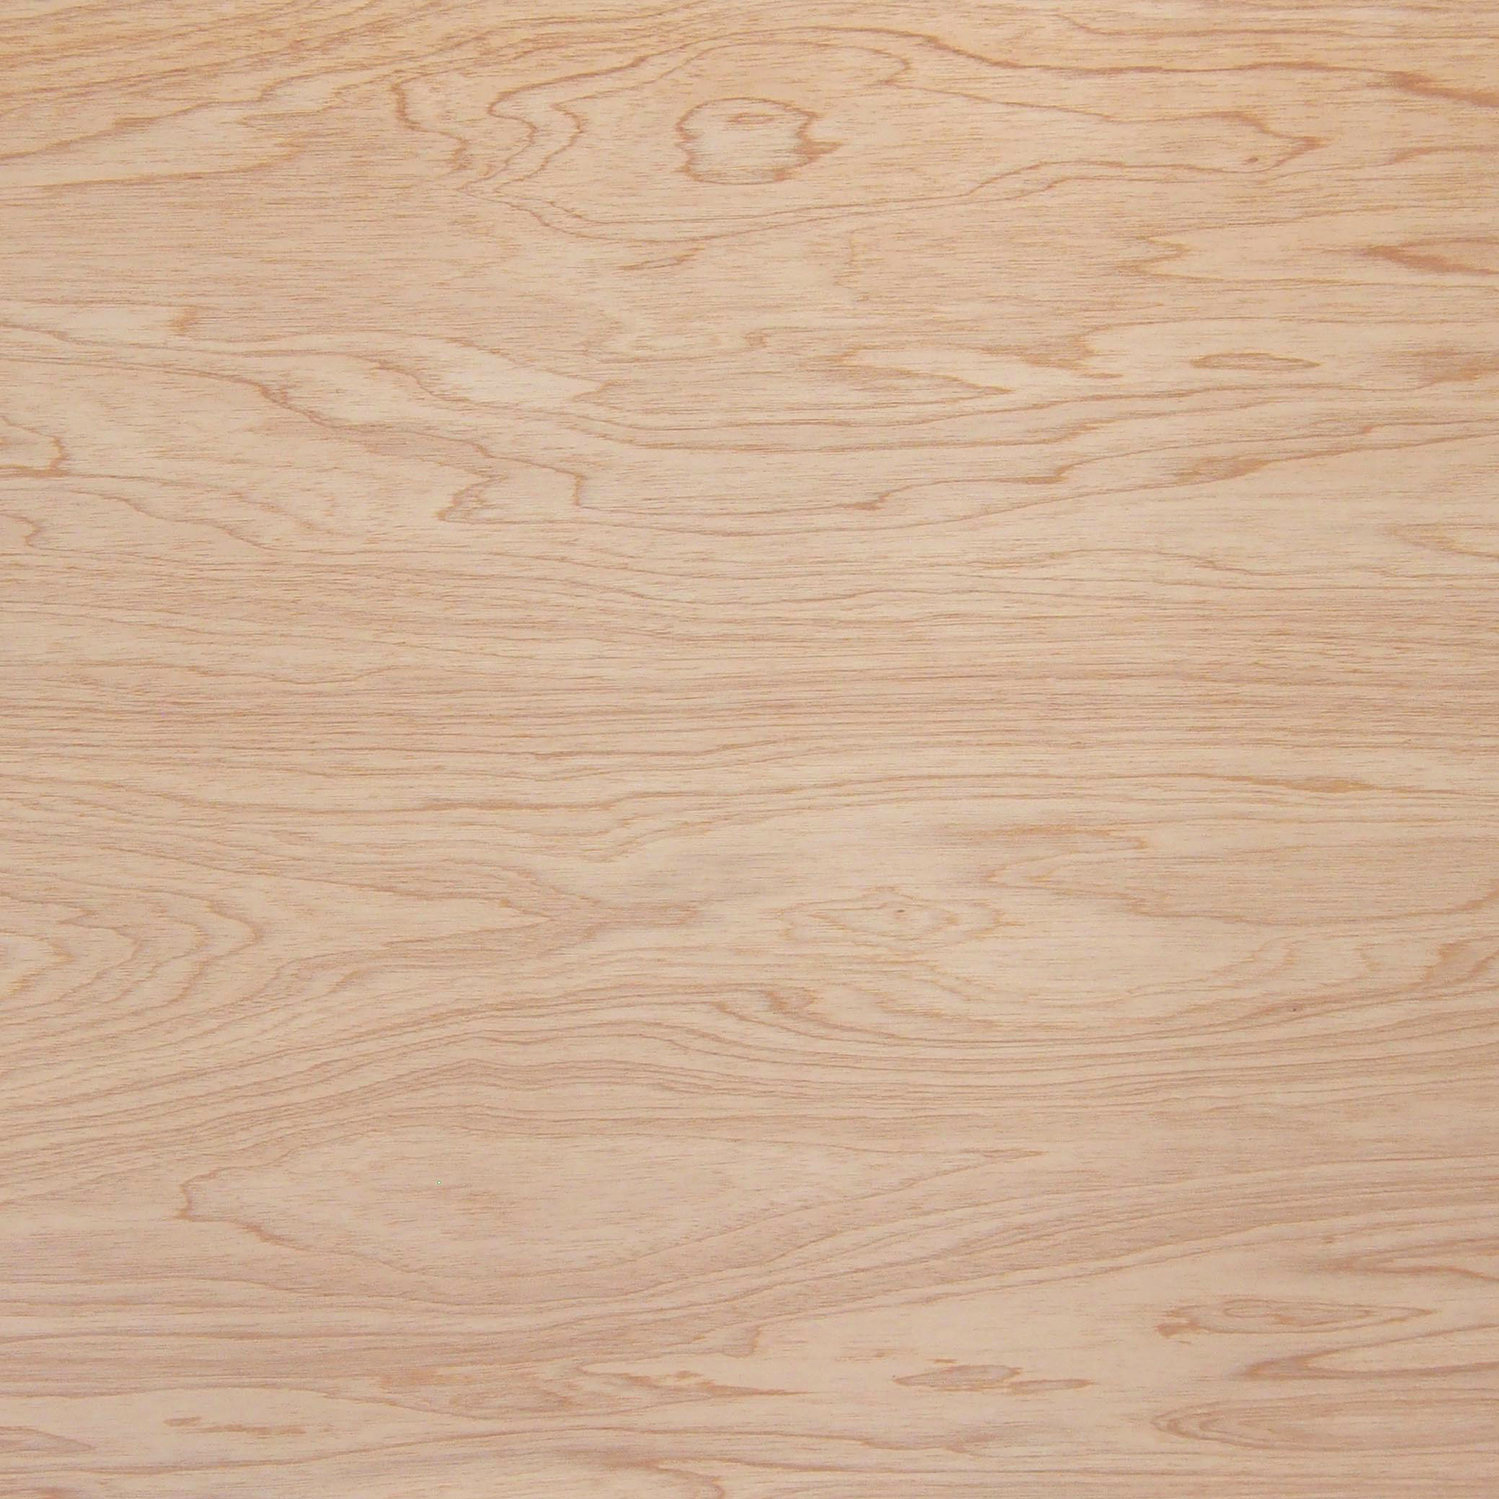 Fijian Cedar  Available in 1.5mm / 2.5mm Maximum size: 600mm x 1200mm